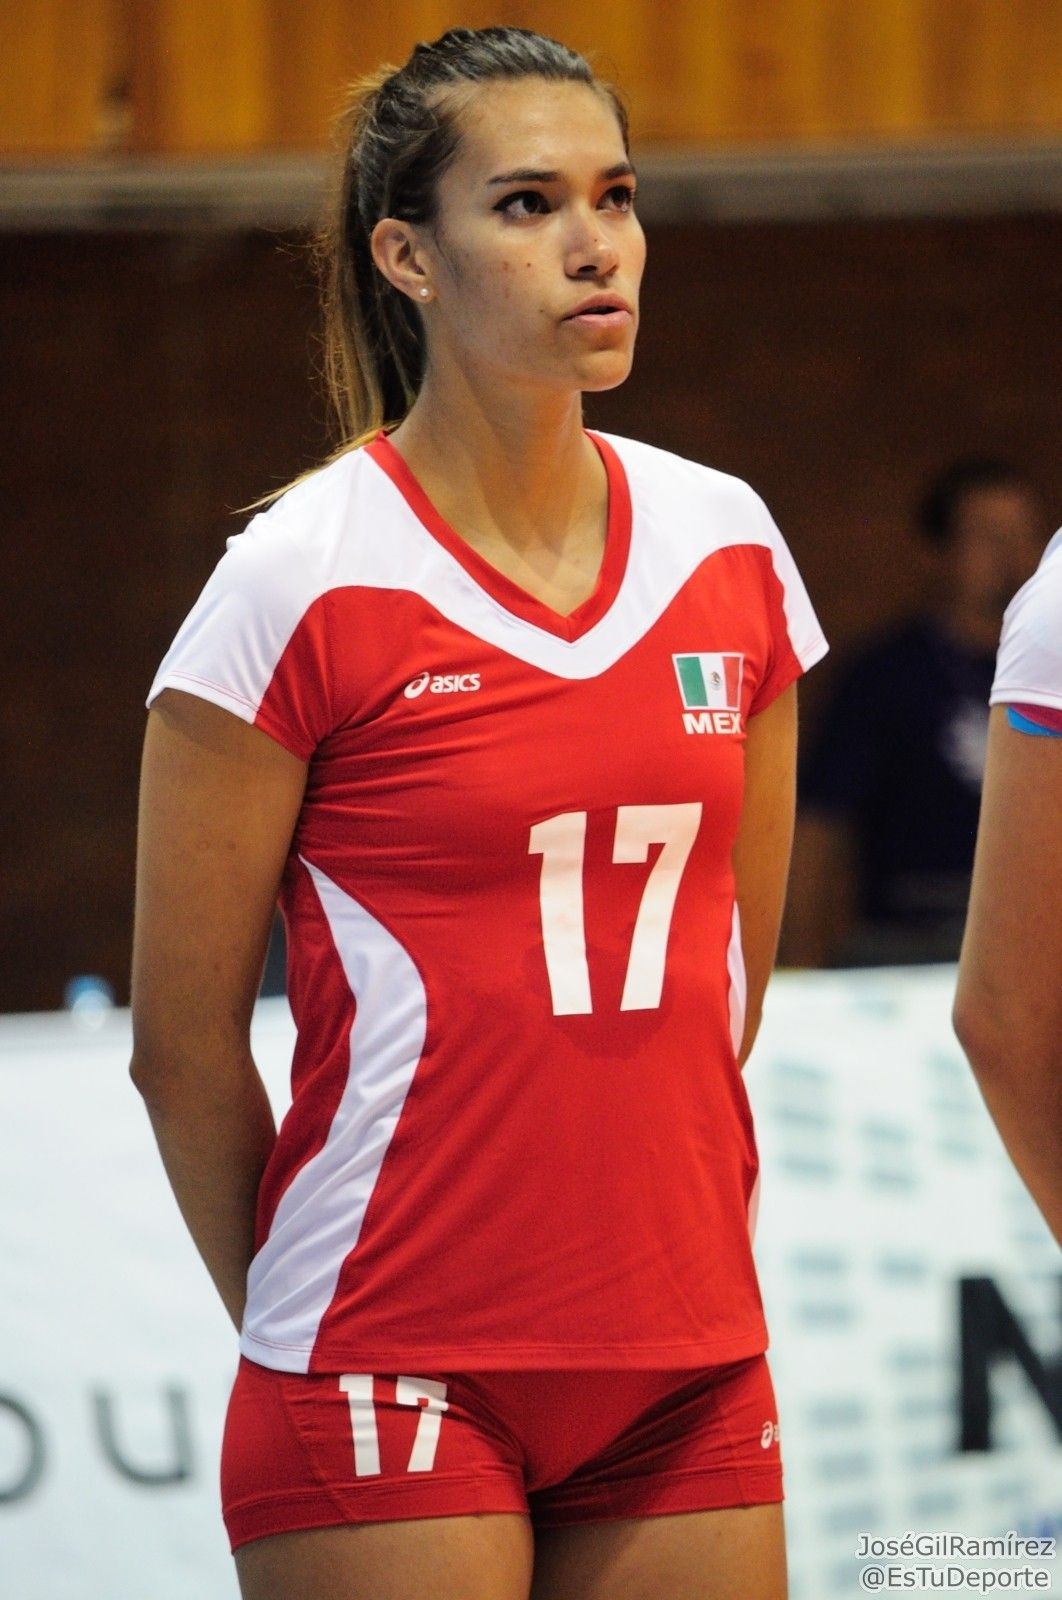 Garridovidal Sports Women Female Athletes Female Volleyball Players